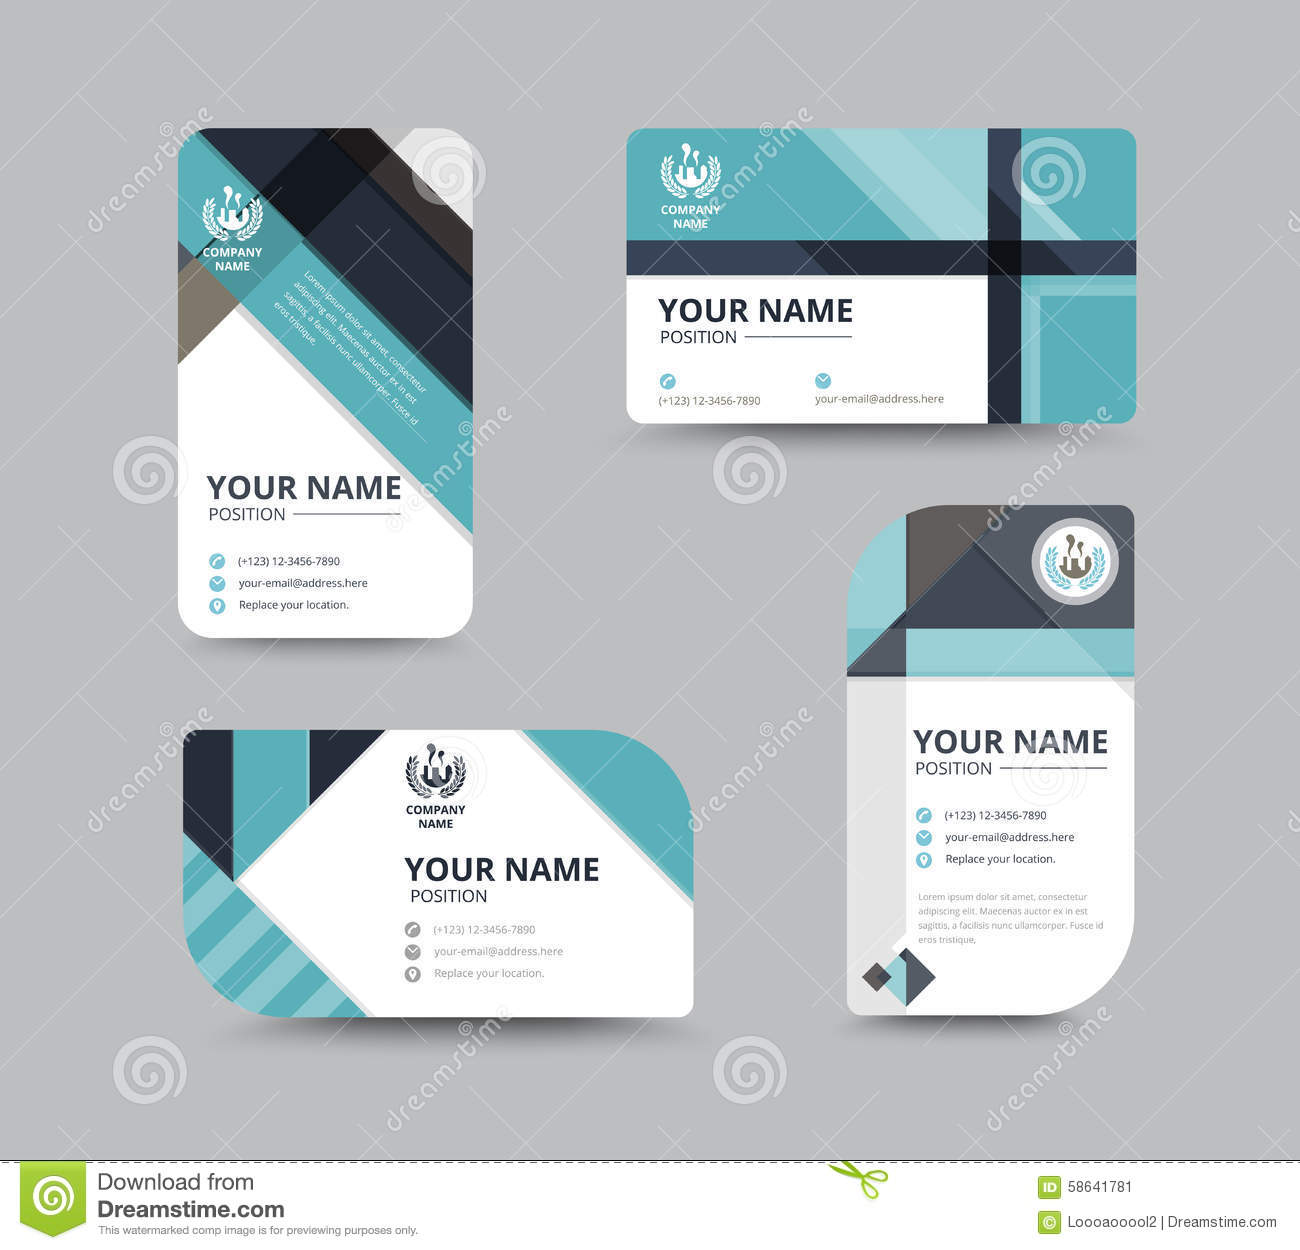 Business name card design for corporation card template vector business greeting card template design introduce card include sample text position vector illustration design accmission